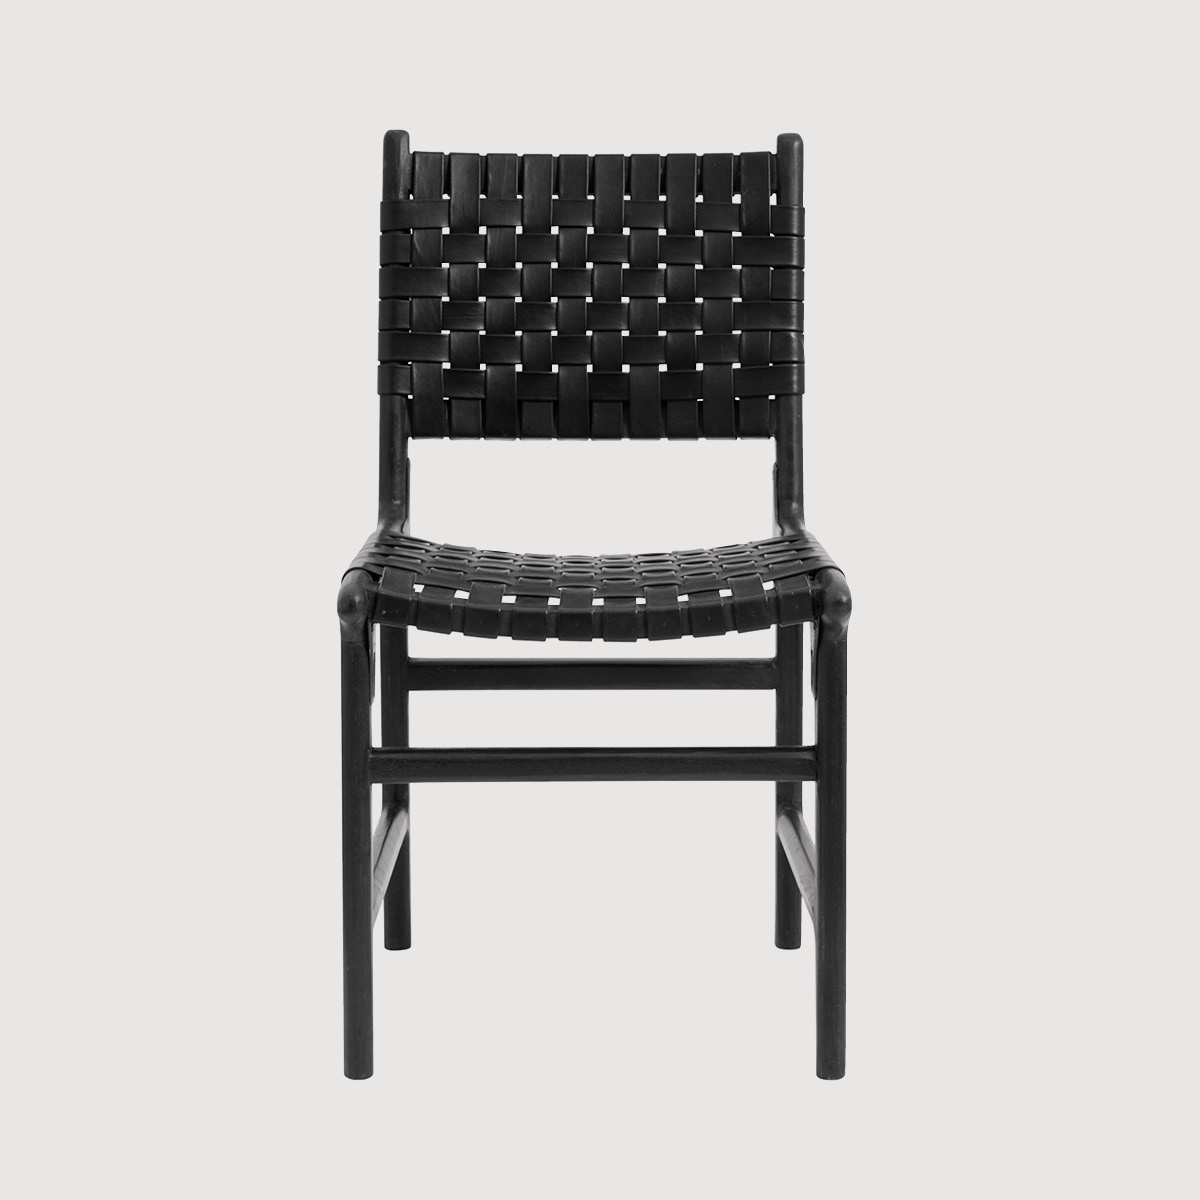 Nero Handmade Black Leather Dining Chair gallery image